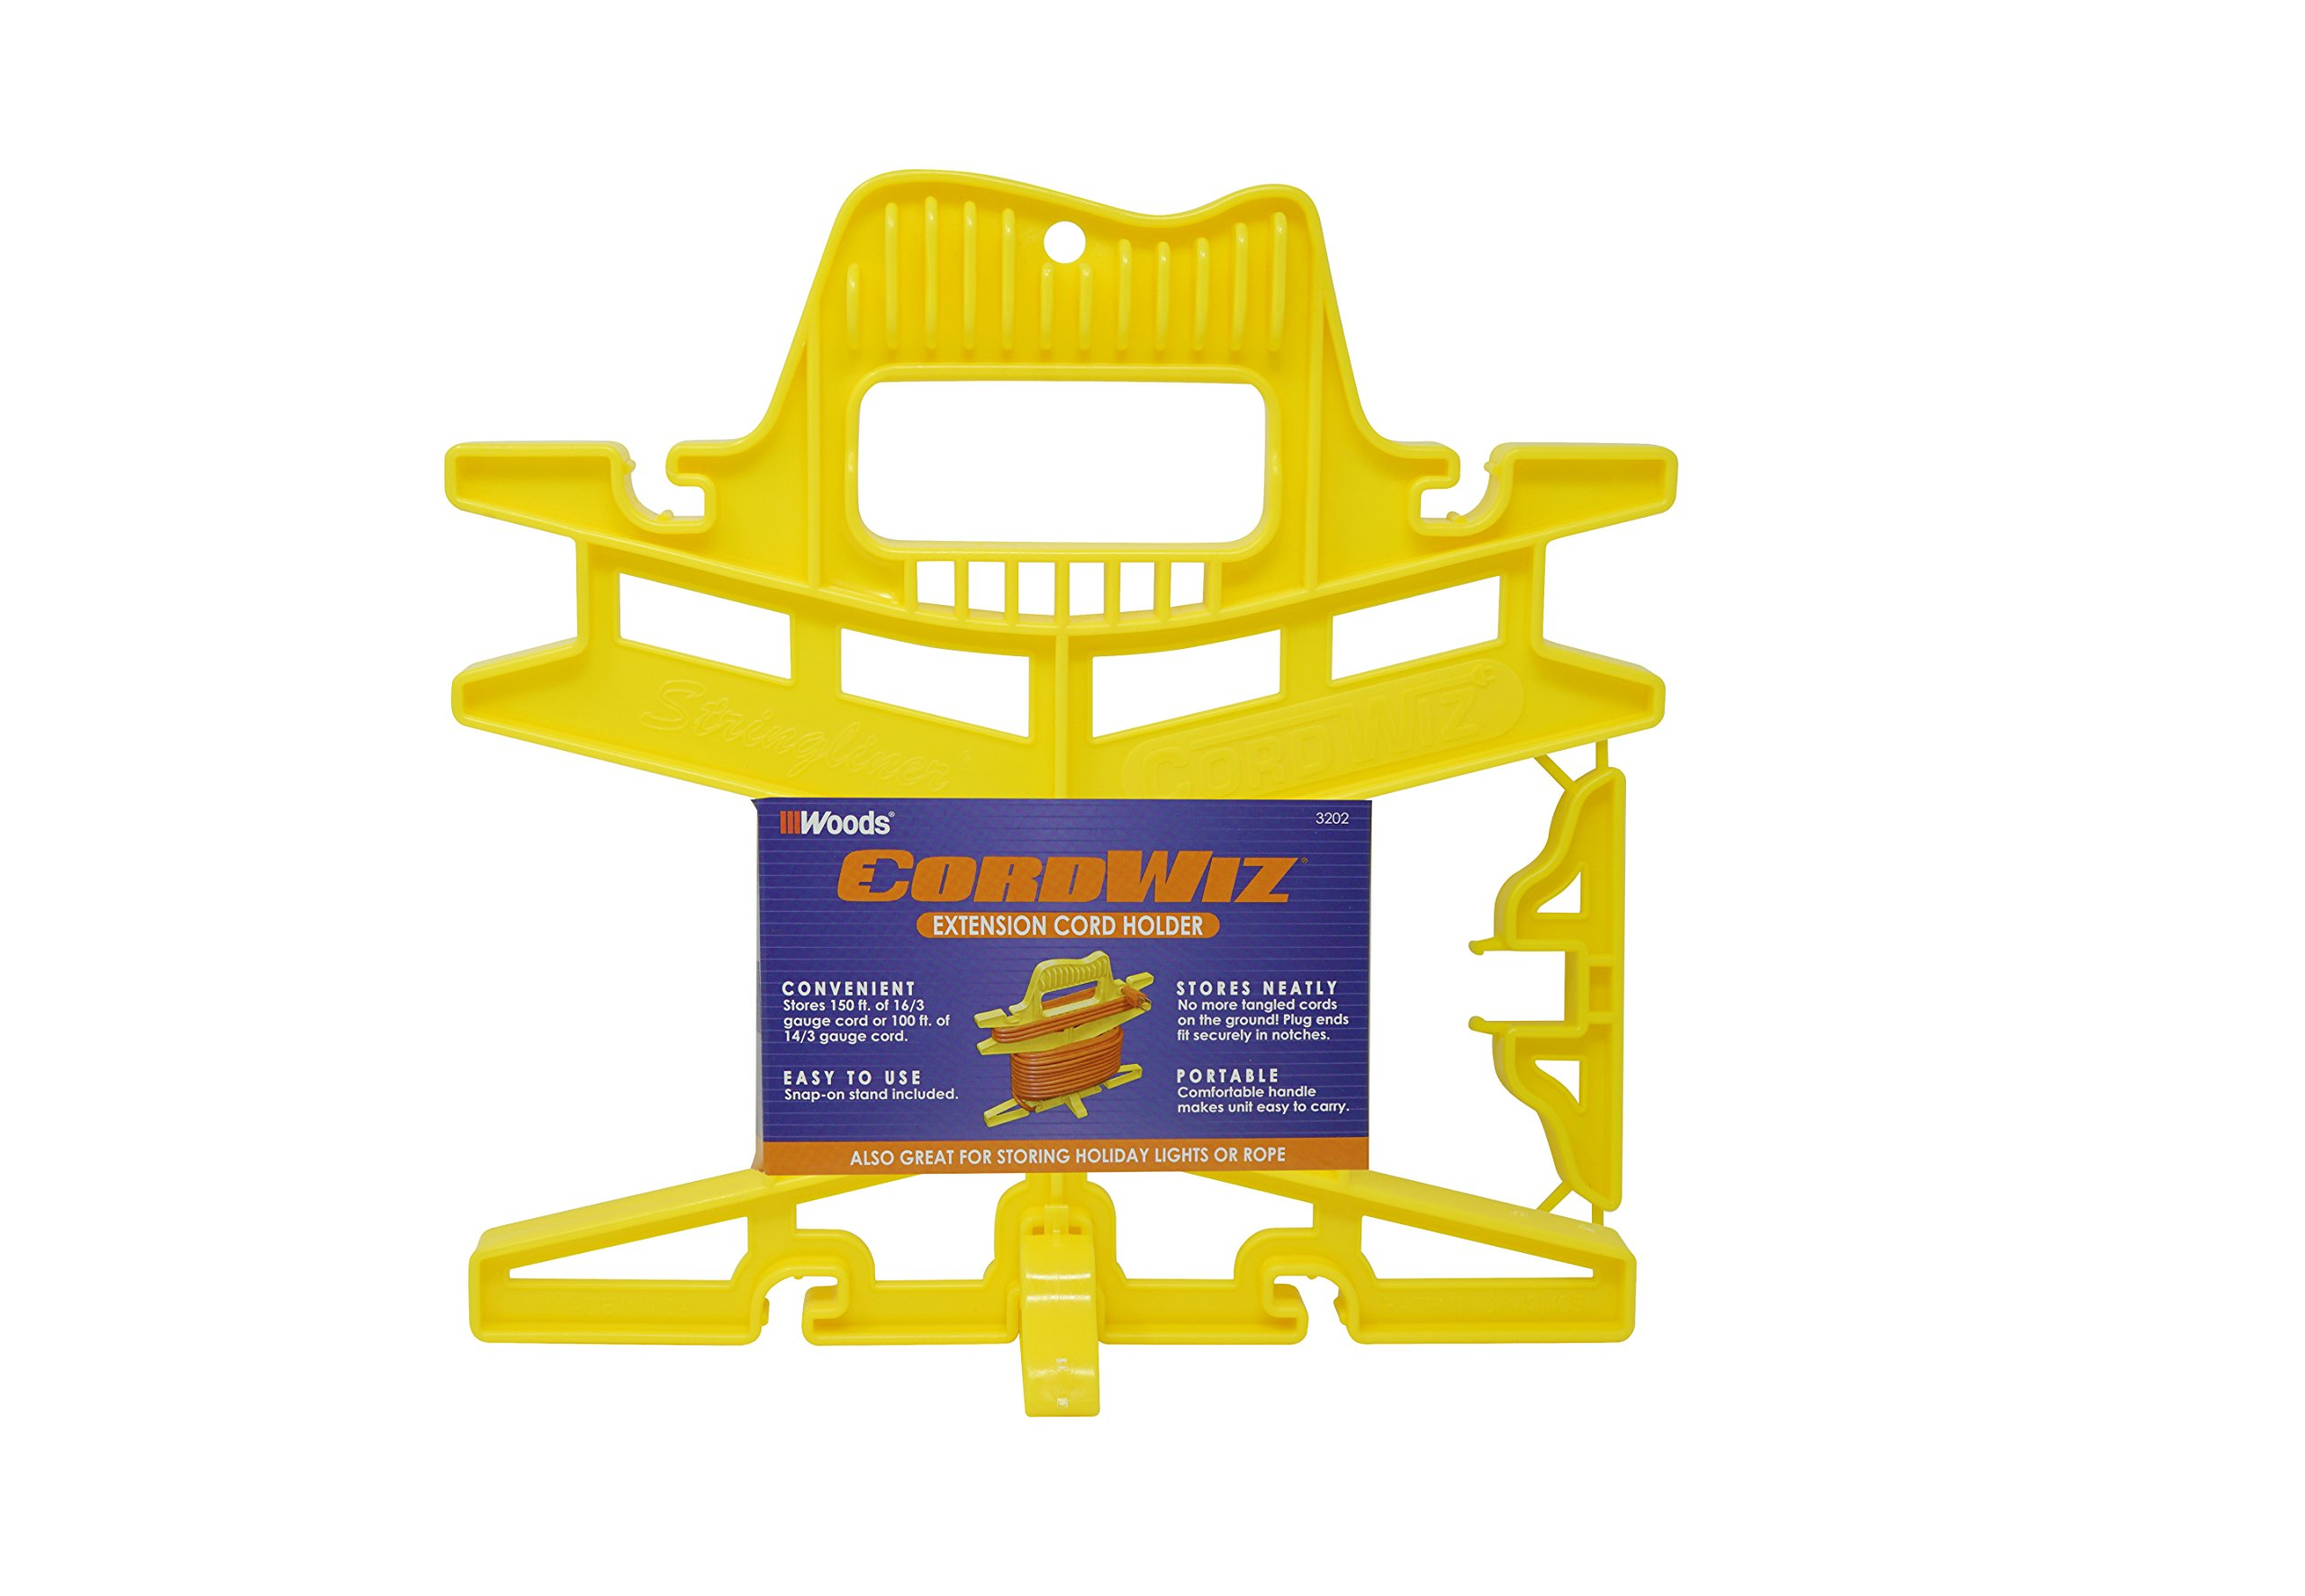 Woods 3202 Extension Cord Holder, 150-Feet